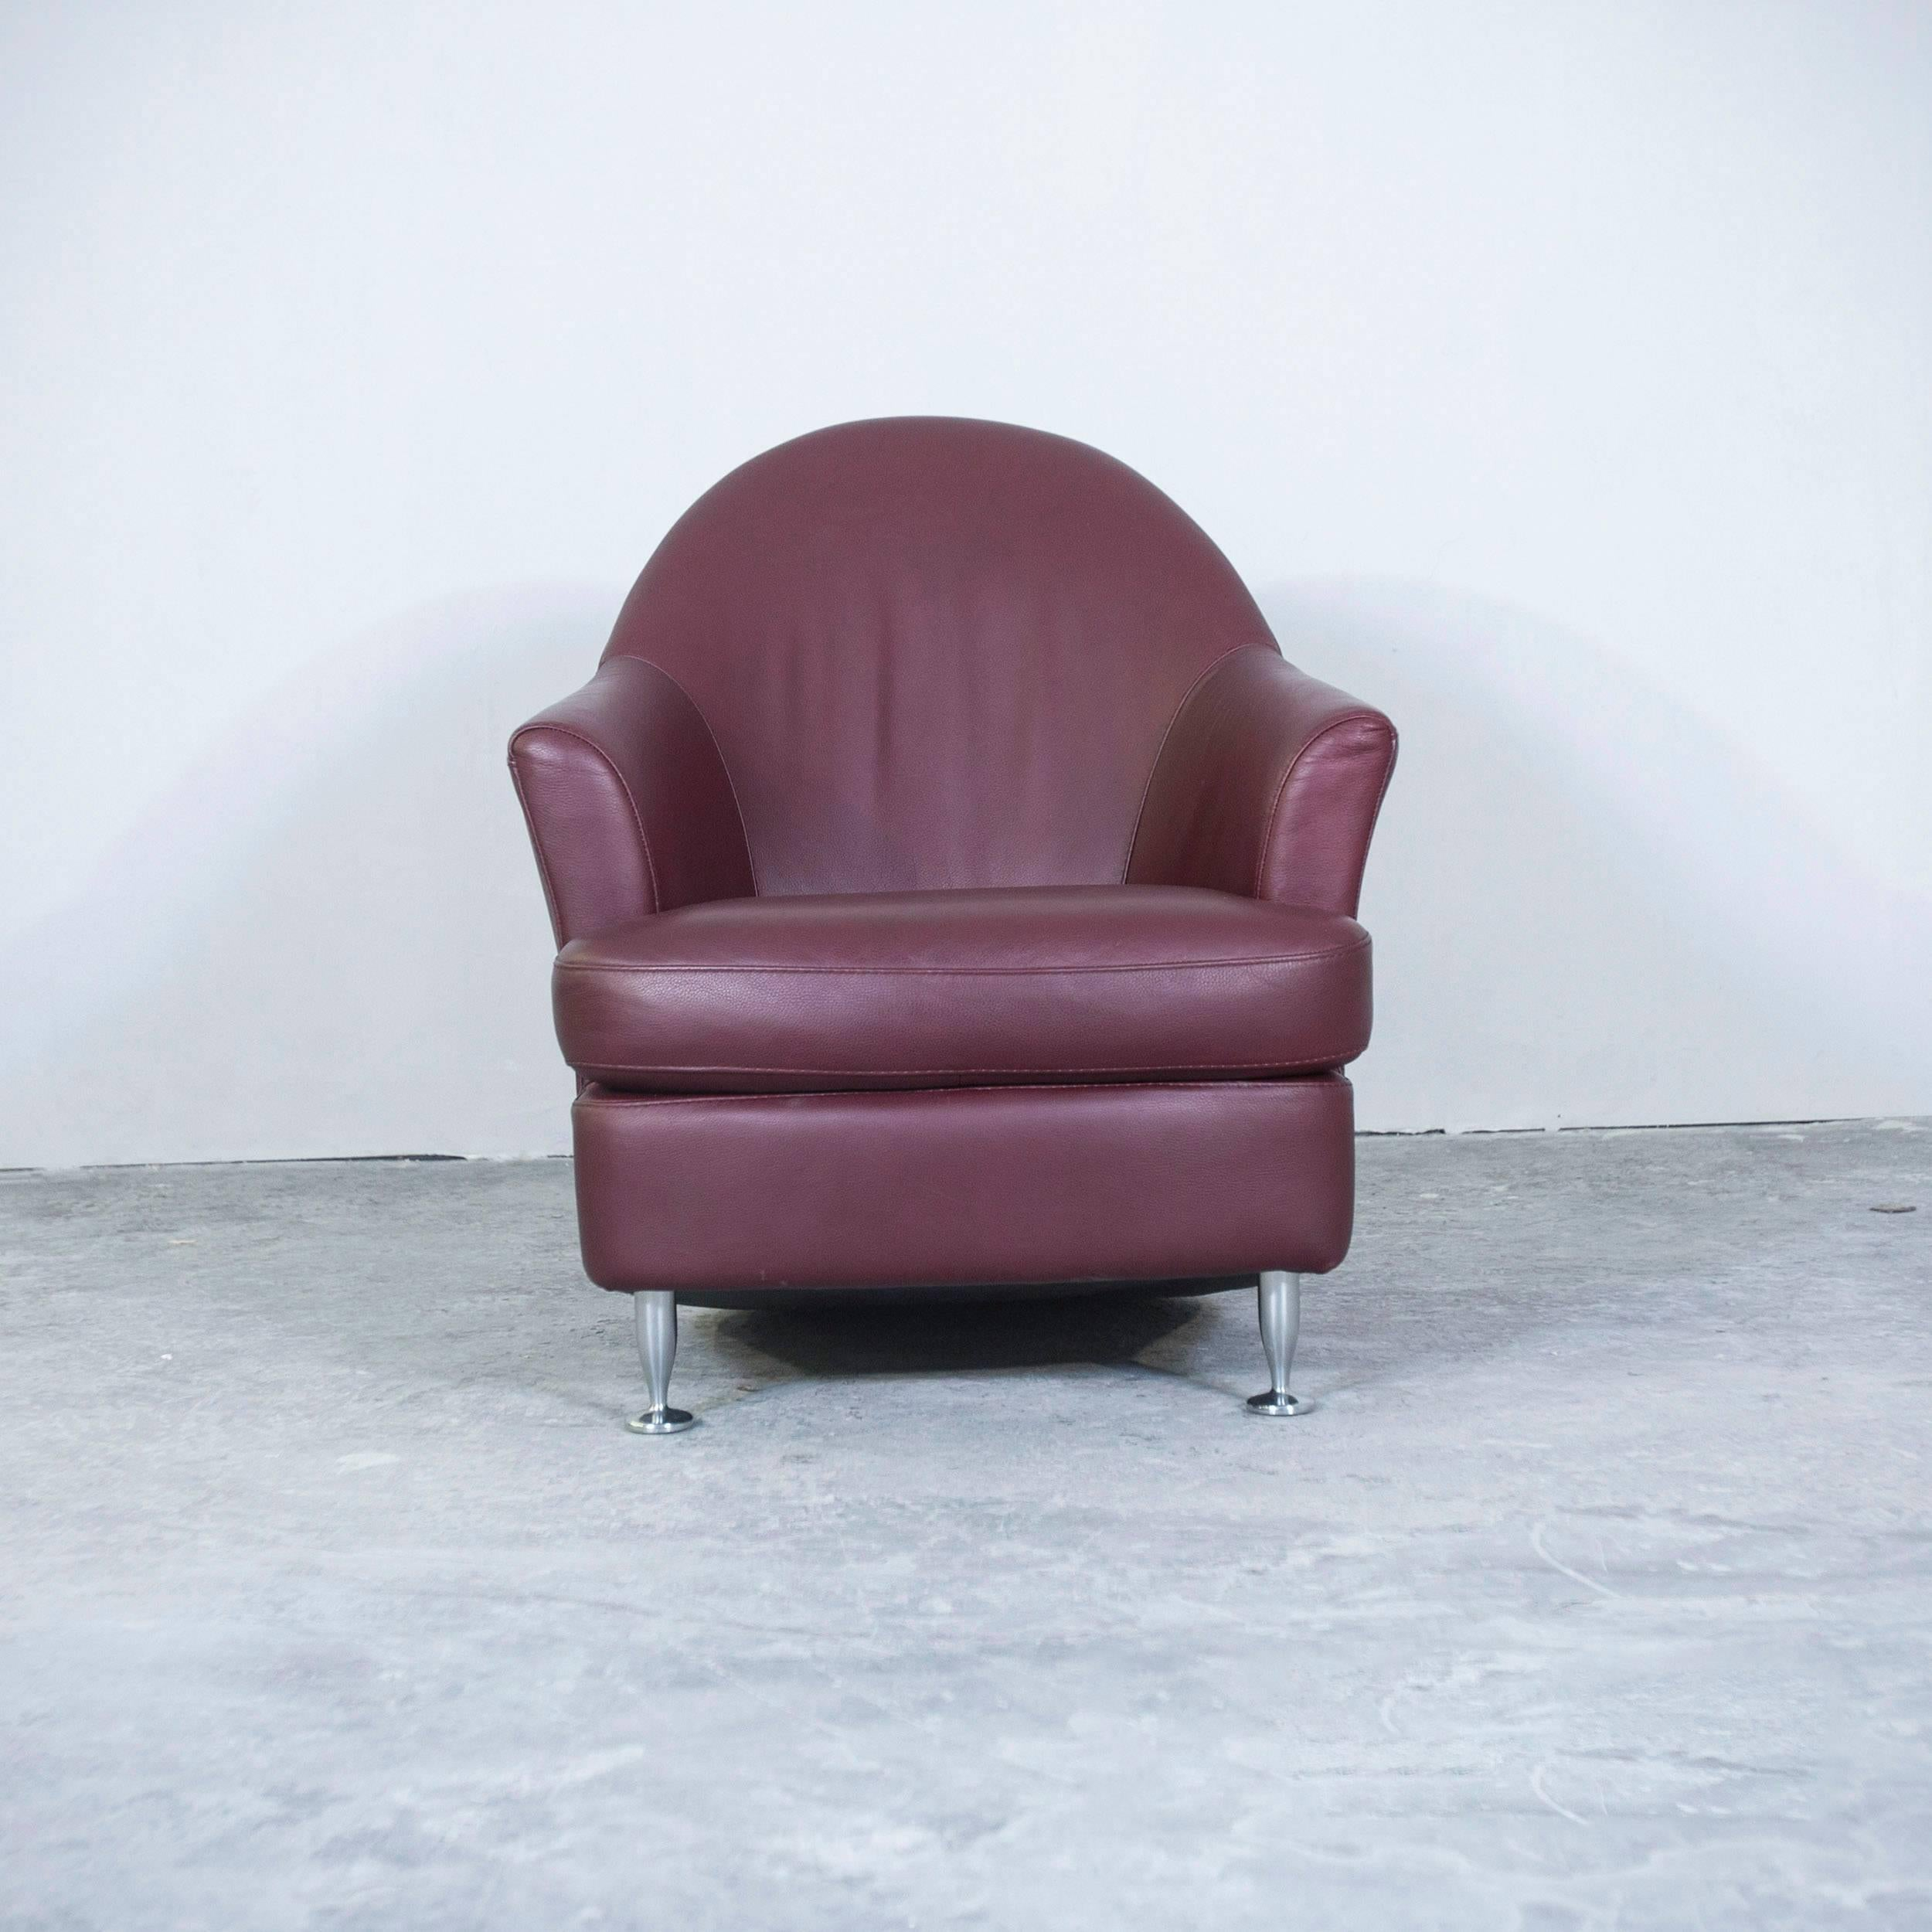 natuzzi revive chair office big and tall designer leather armchair red modern at 1stdibs